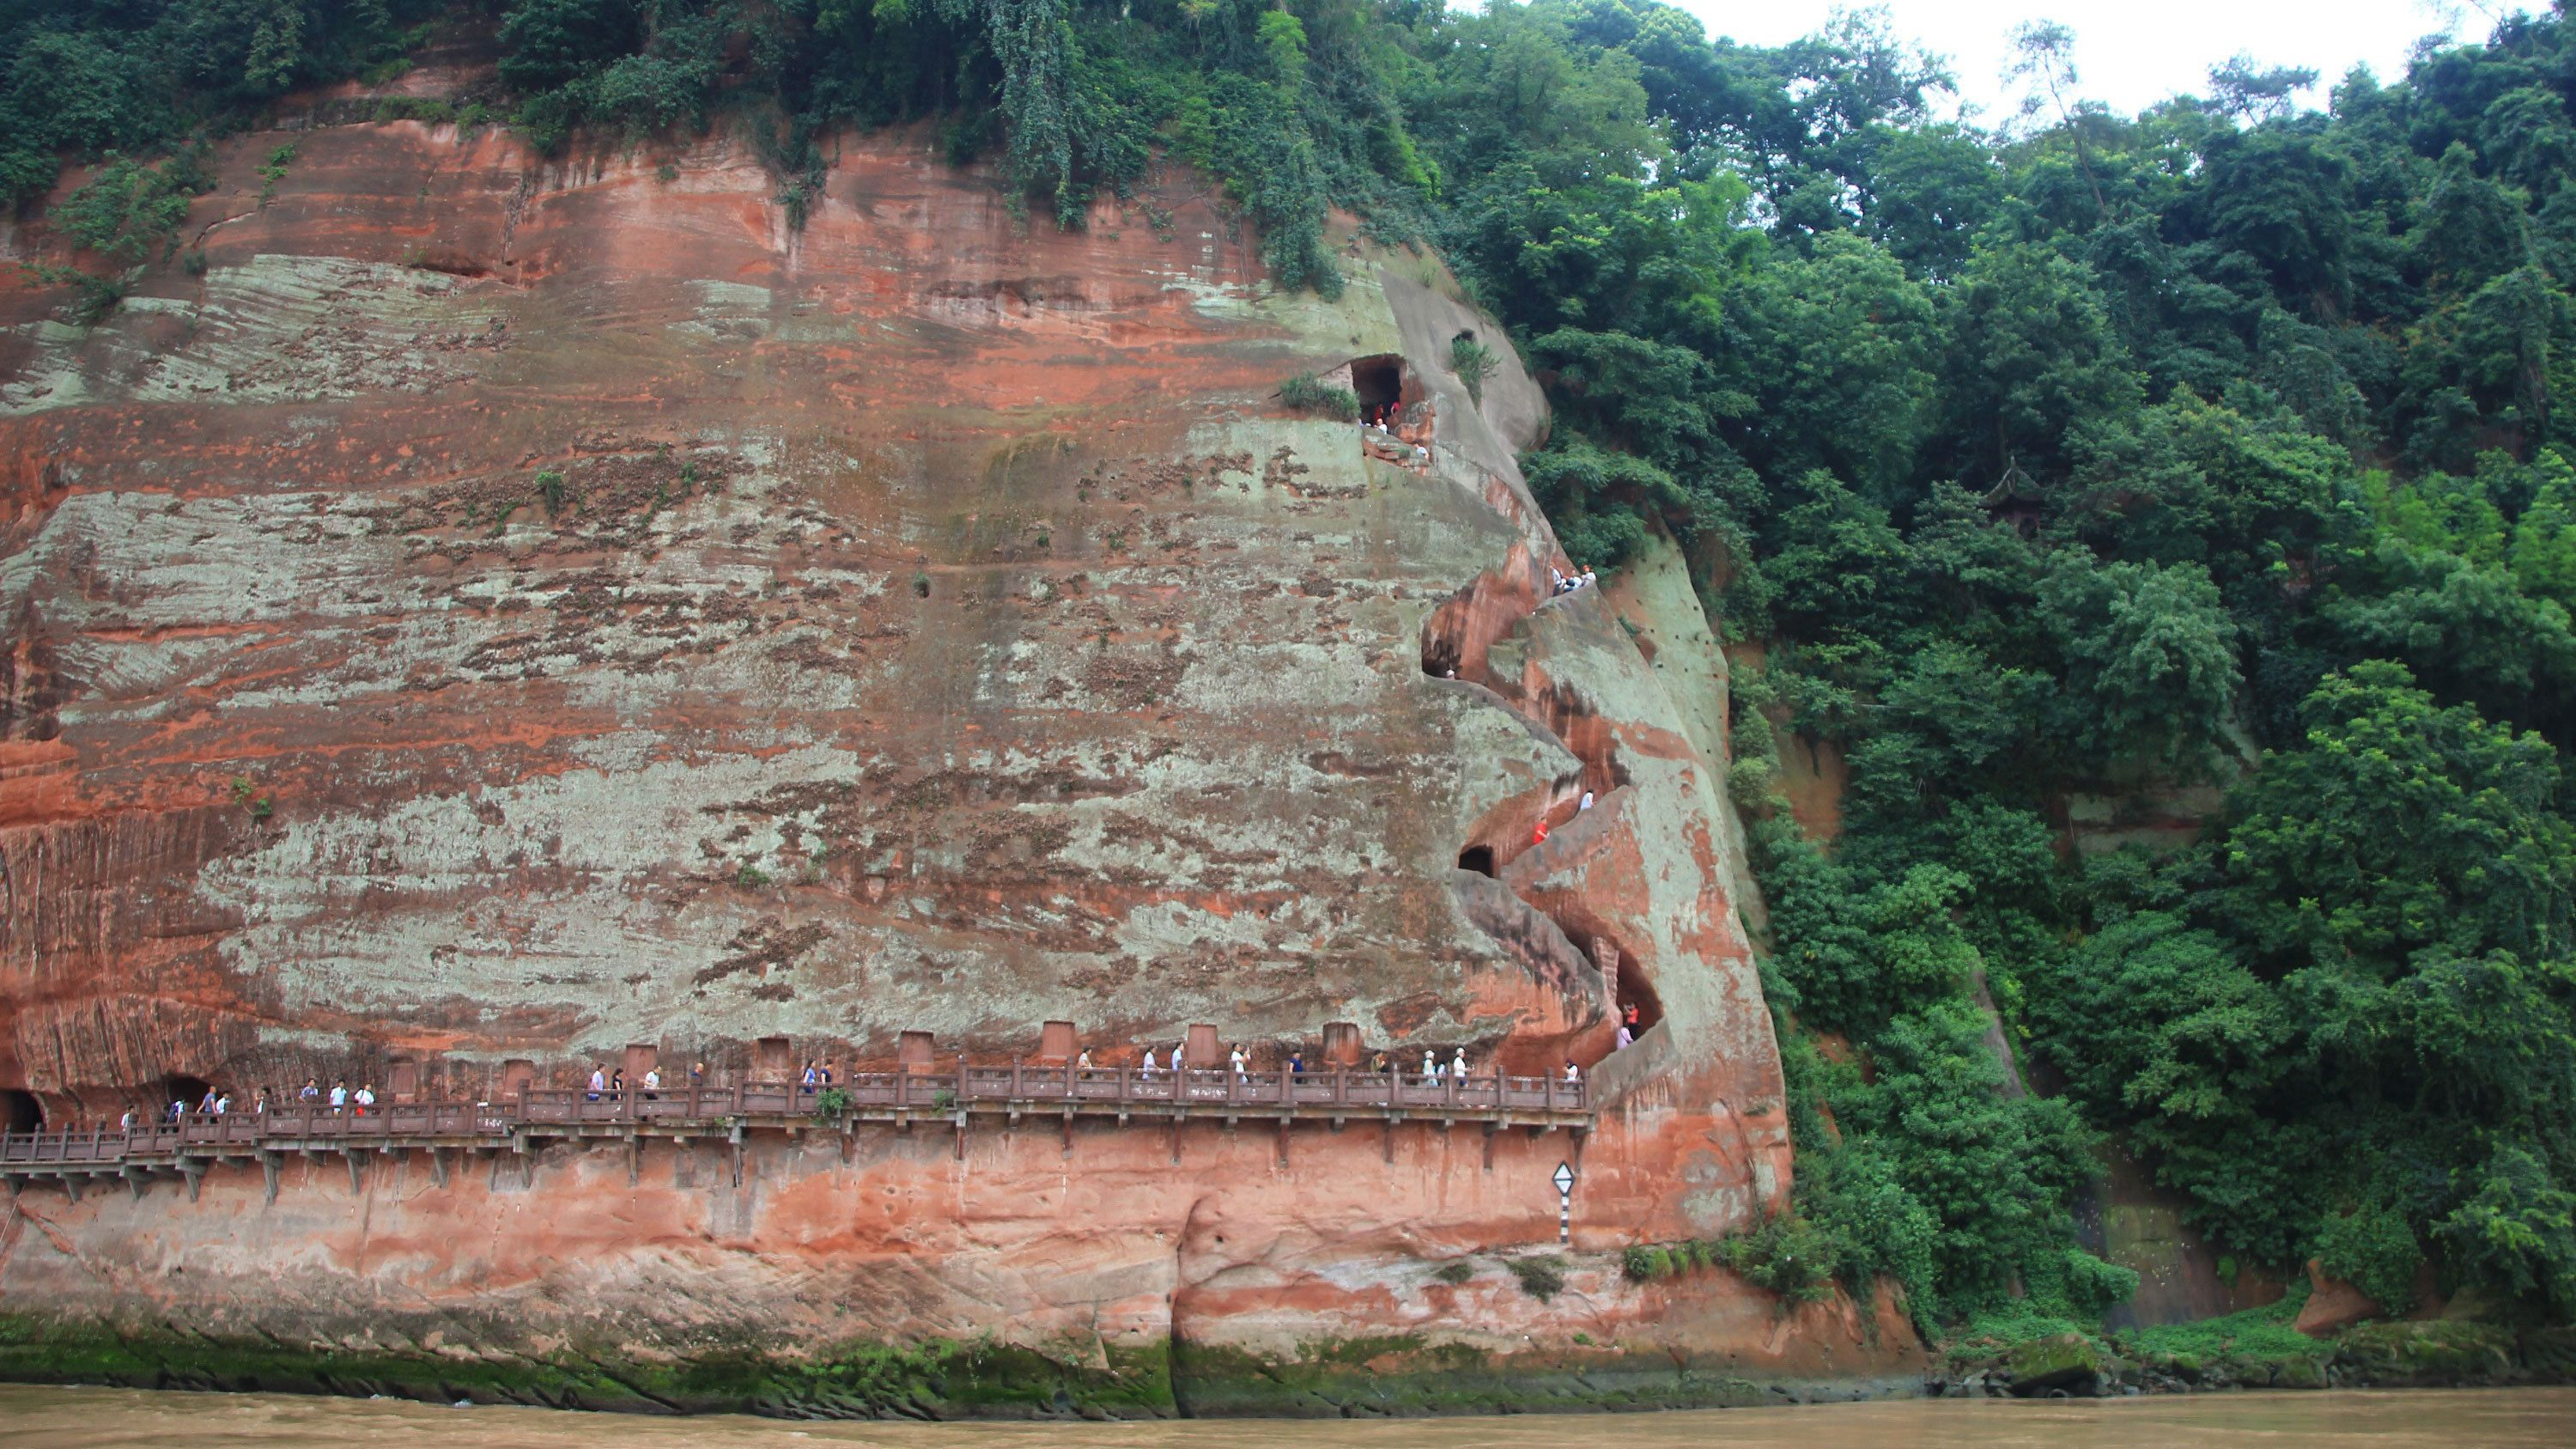 Cliffside stairs to a Buddha statue